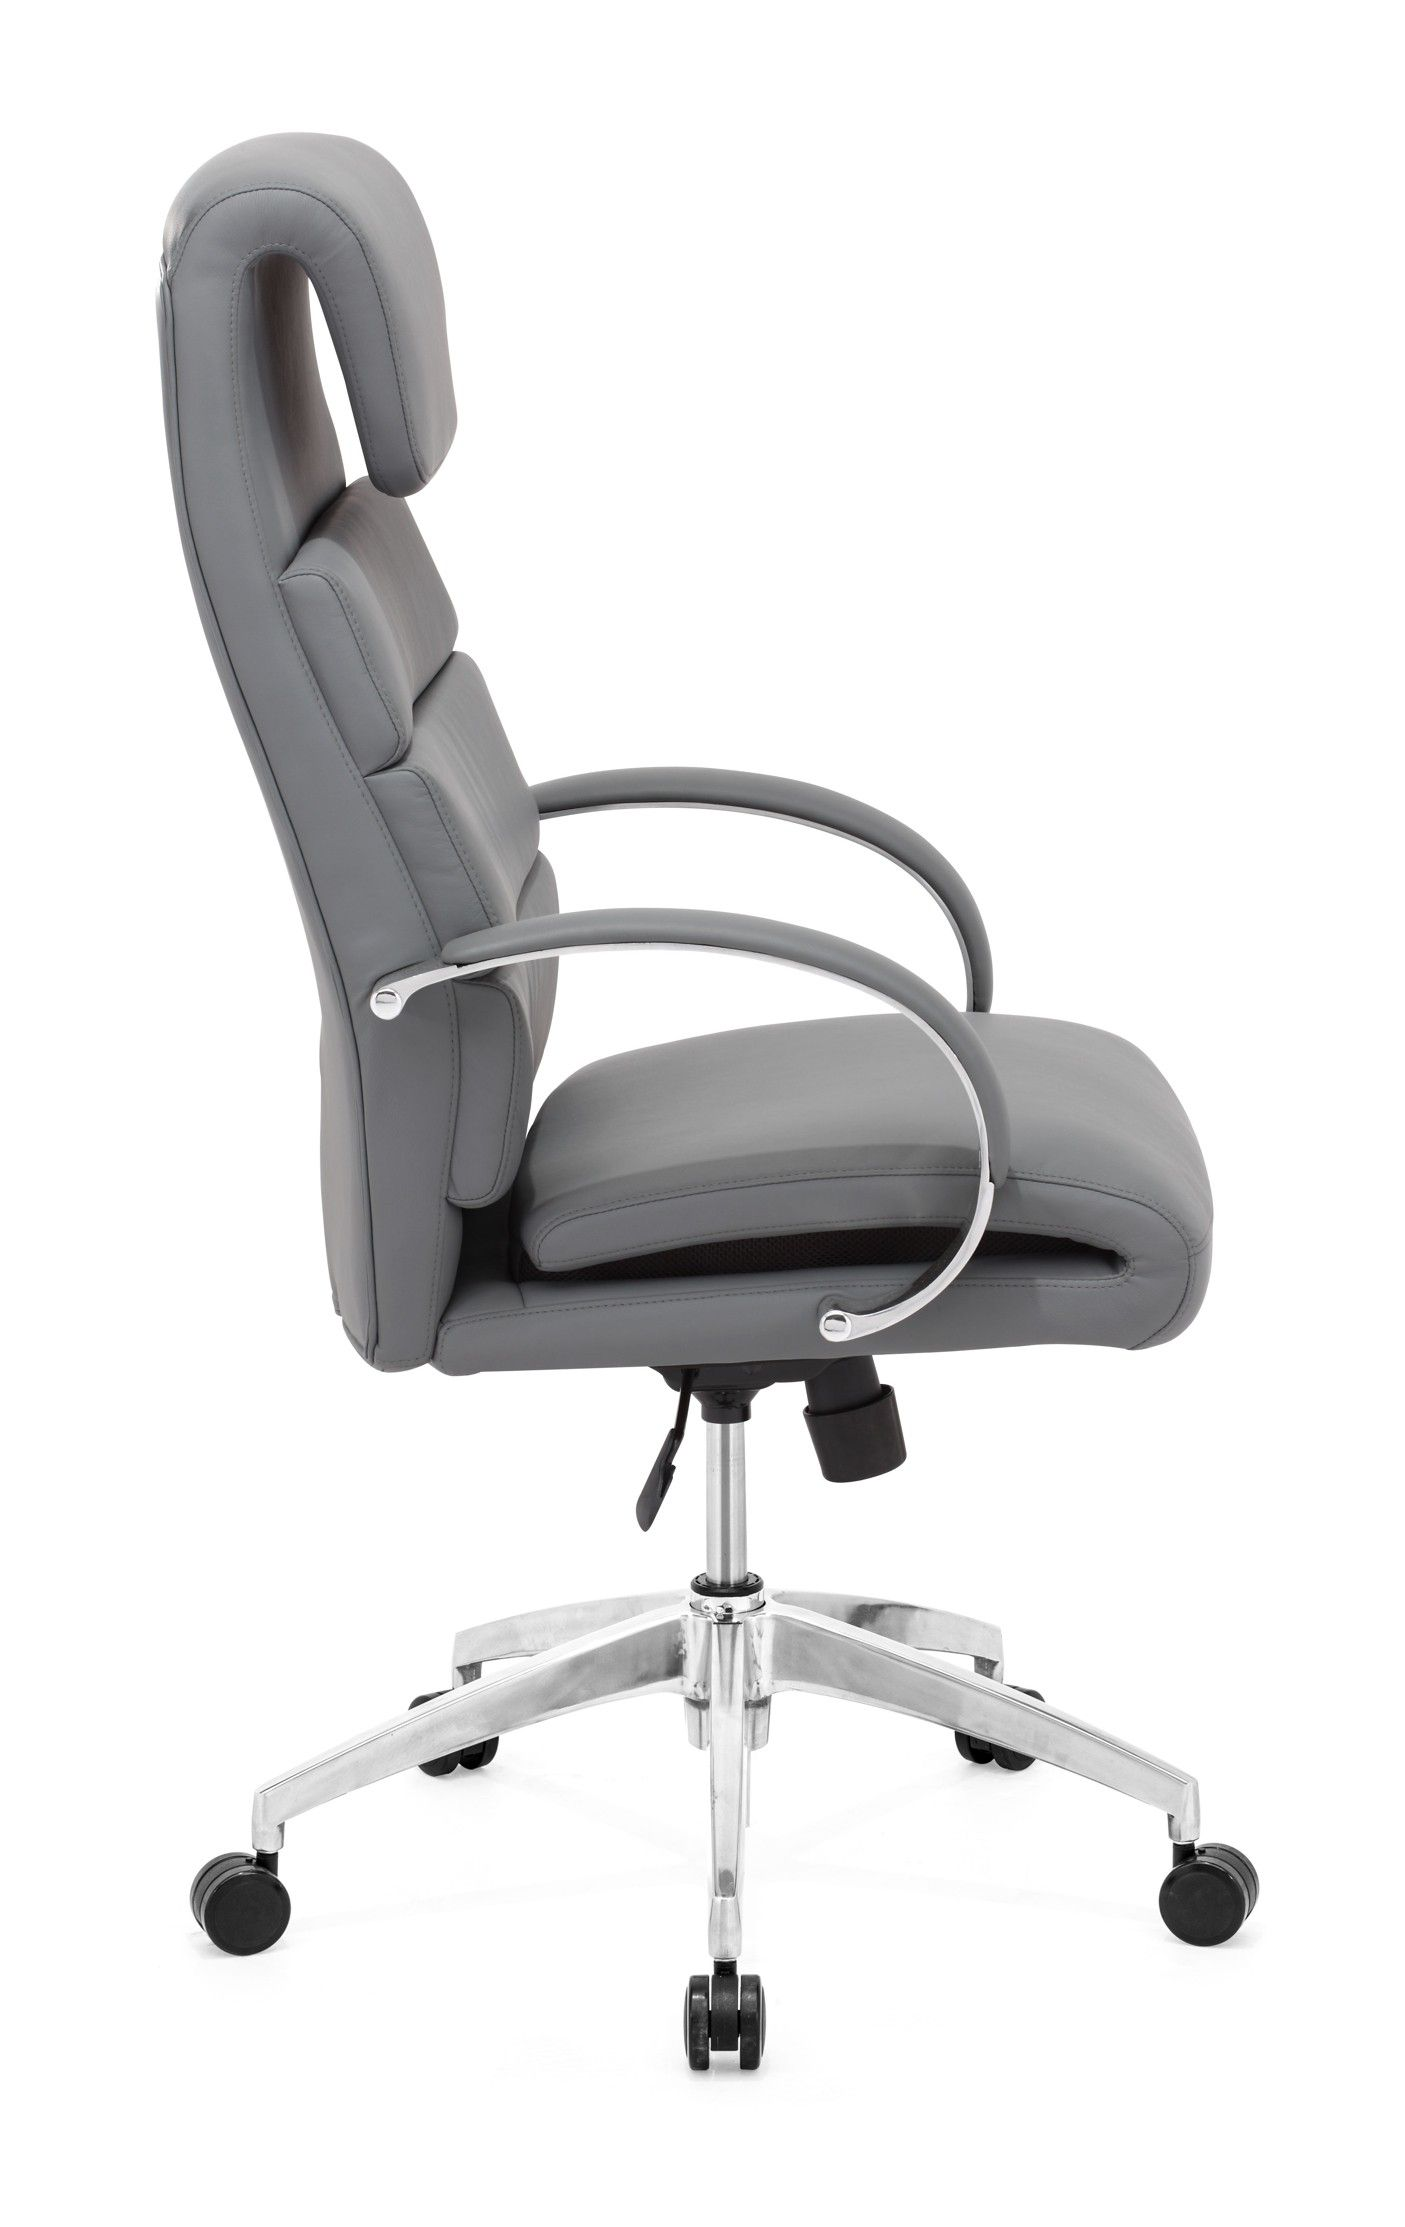 Awesome Epic Grey Office Chair 59 On Home Decor Ideas With Grey Office Chair  Check More Photo